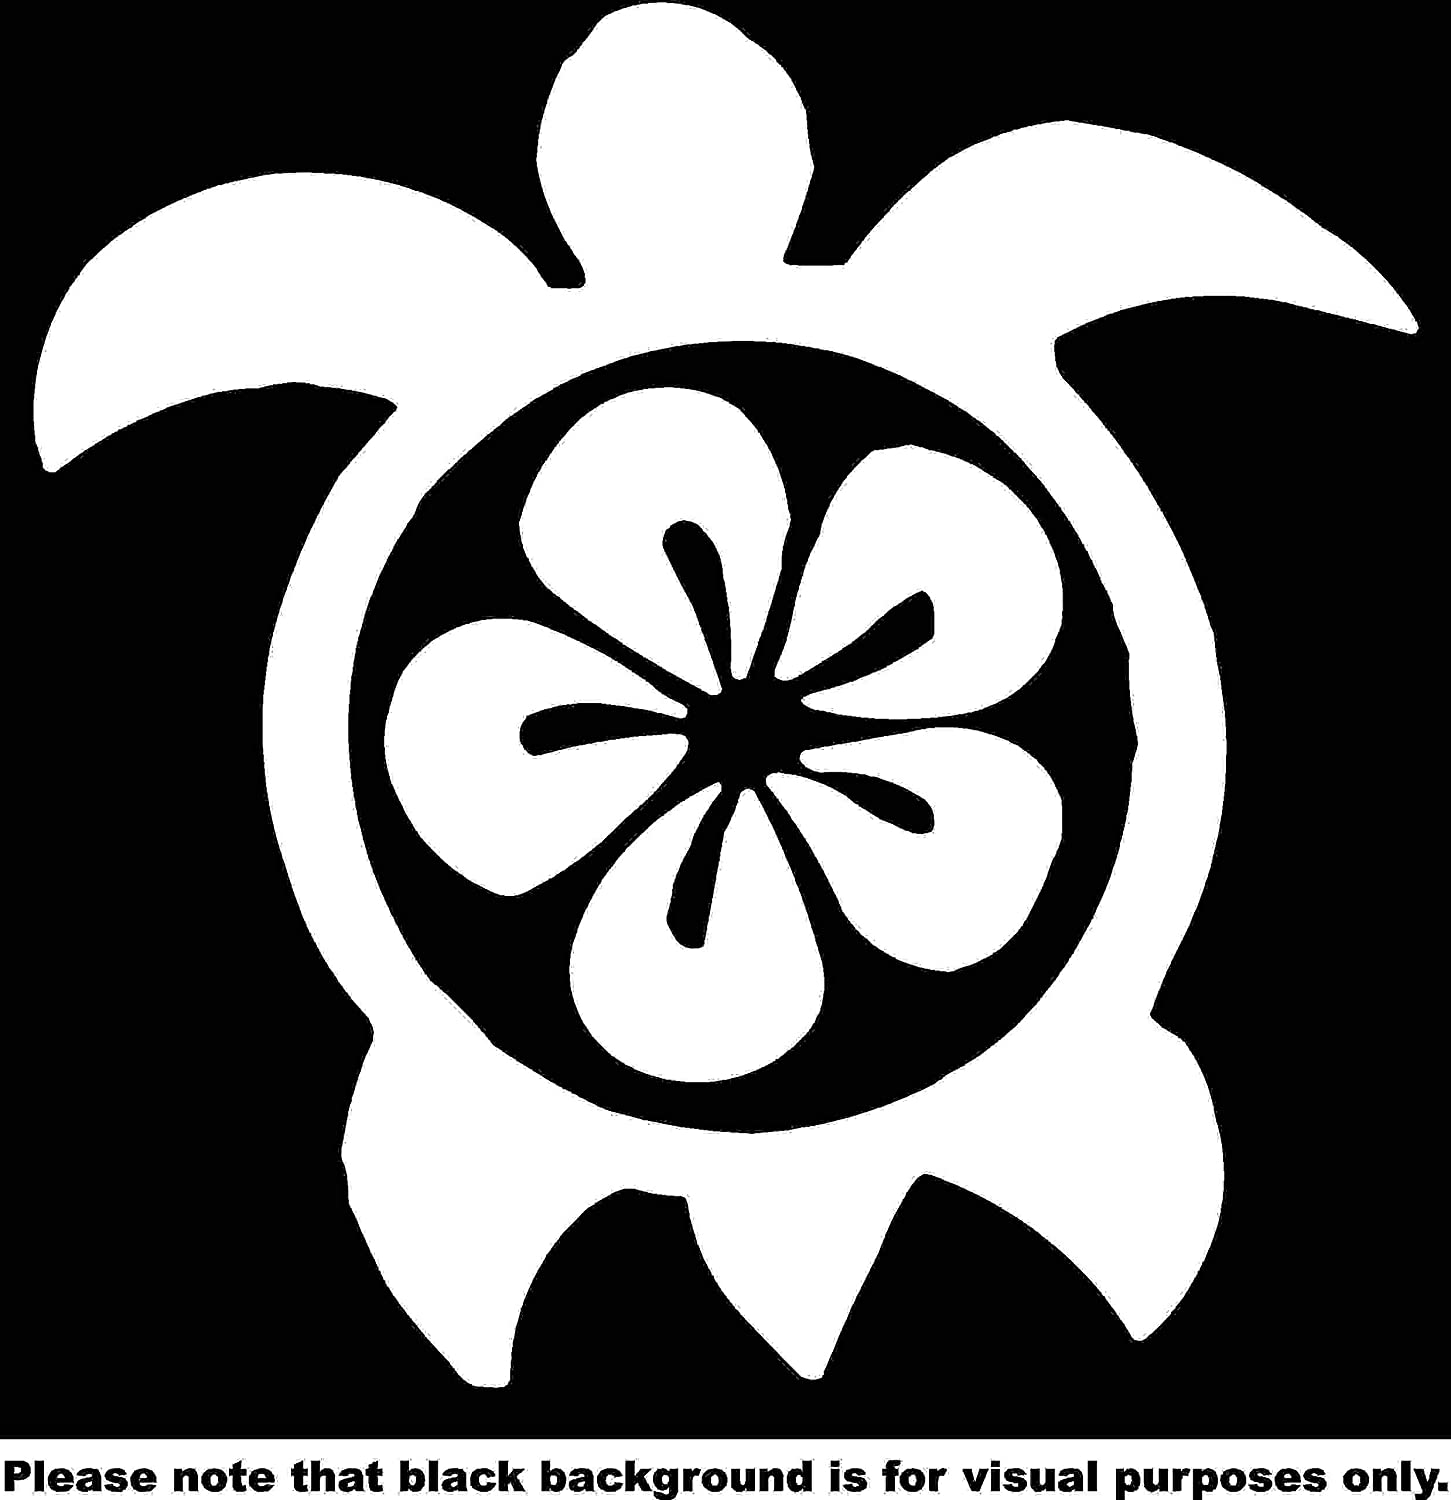 Animal Hawaiian Turtle Plumeria Flower Green Sea Car Window Tumblers Wall Decal Sticker Vinyl Laptops Cellphones Phones Tablets Ipads Helmets Motorcycles Computer Towers V and T Gifts